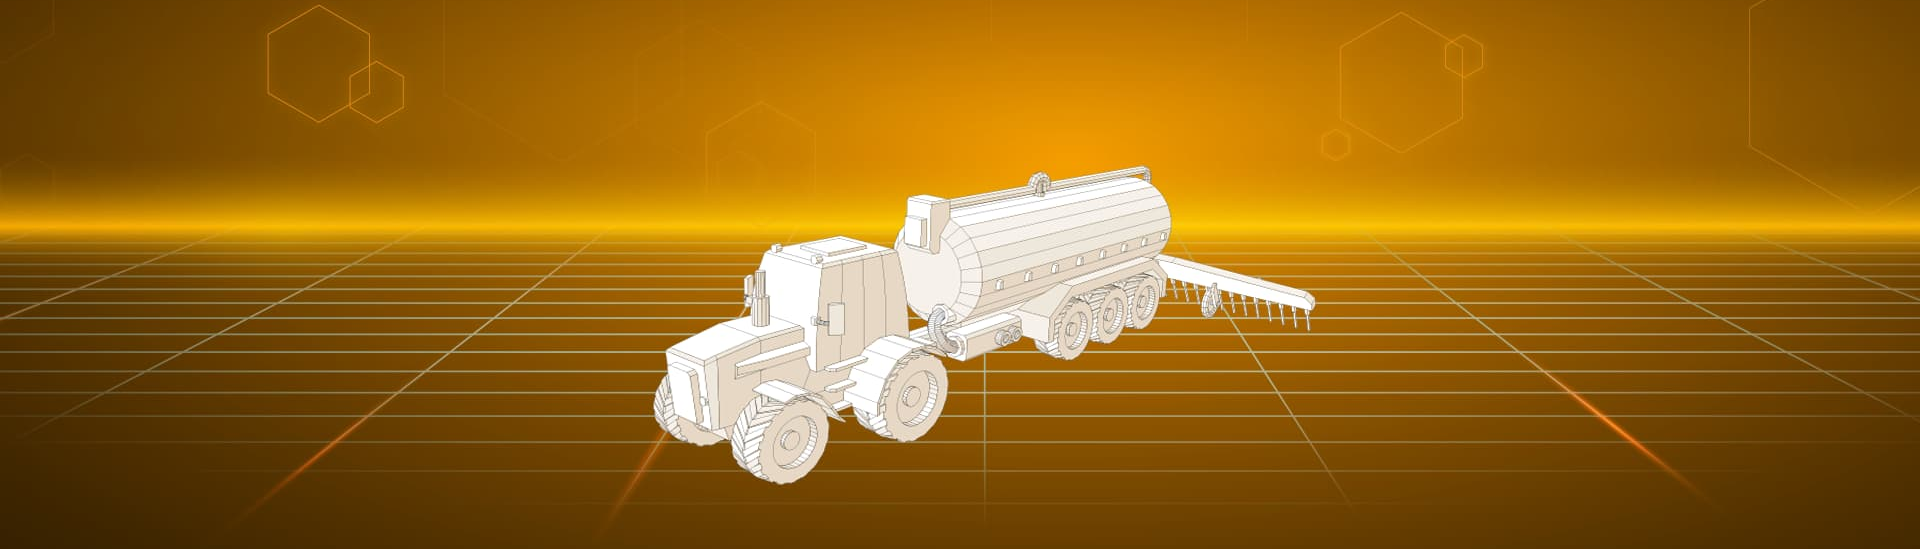 Animation Agriculture by KTR Systems GmbH